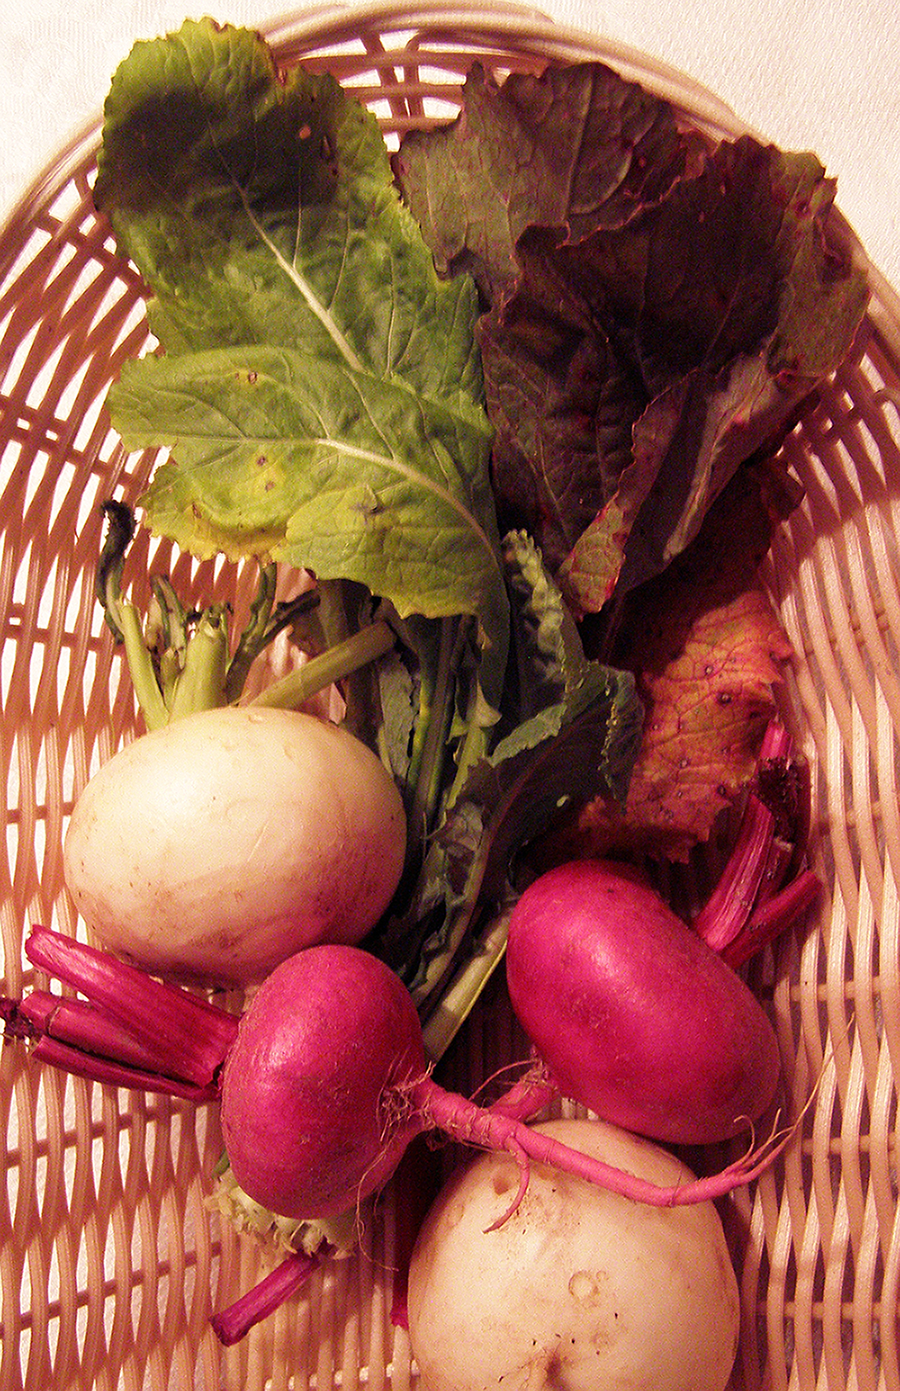 Red and White Japanese Turnips